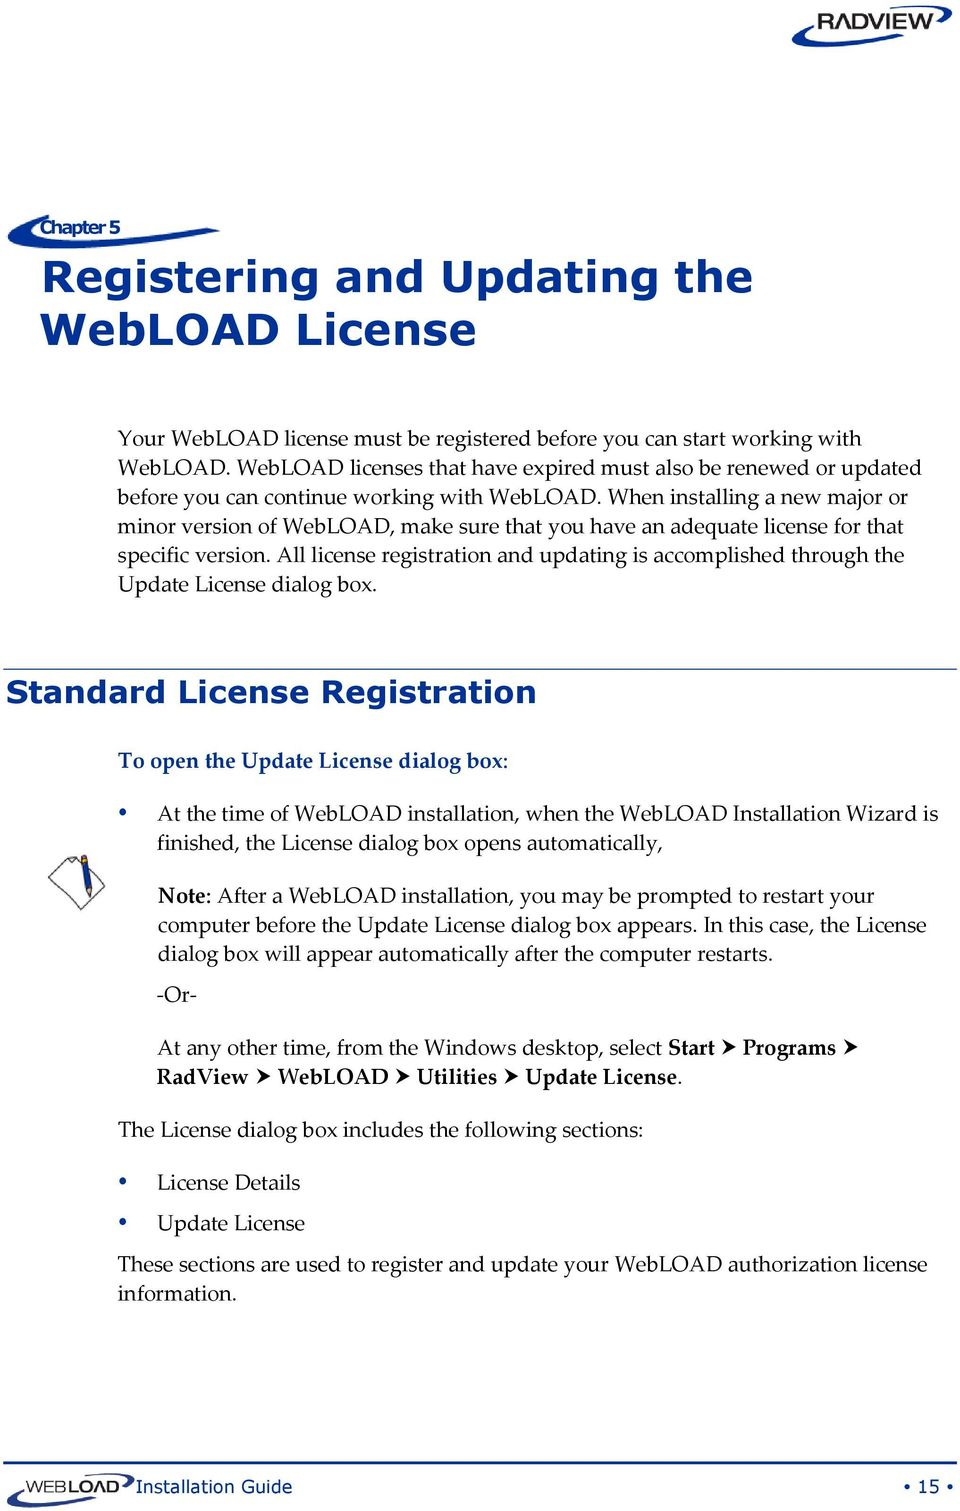 When installing a new major or minor version of WebLOAD, make sure that you have an adequate license for that specific version.